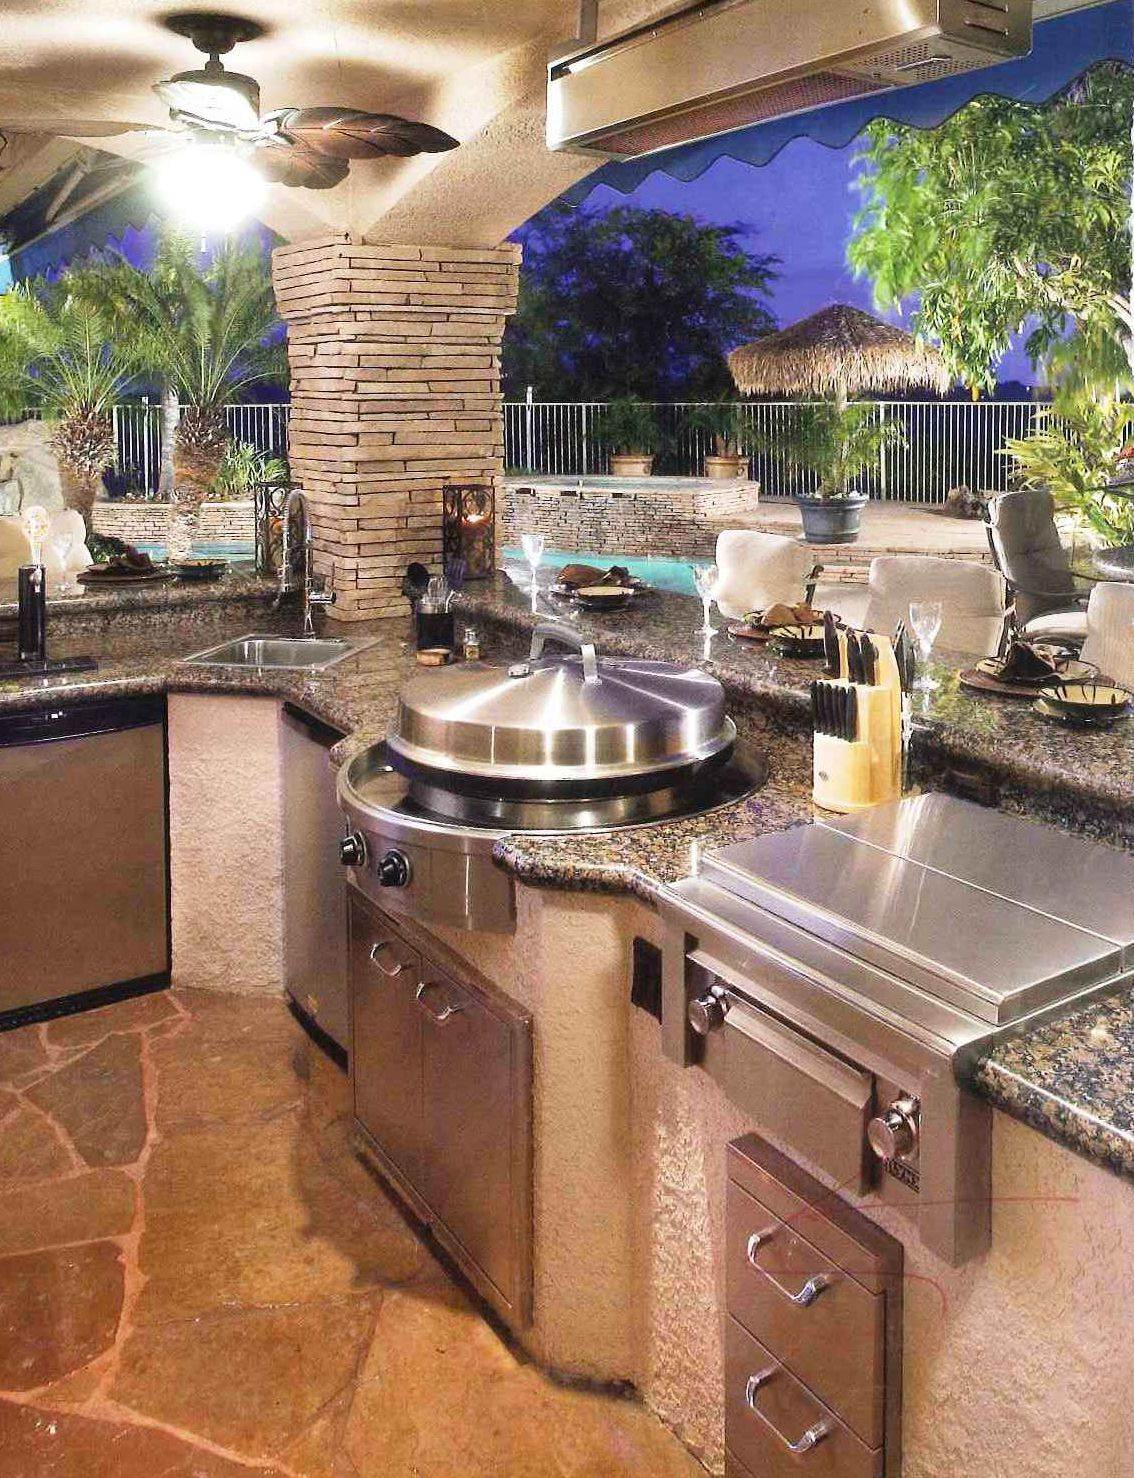 70 awesomely clever ideas for outdoor kitchen designs with images outdoor kitchen design on outdoor kitchen yard id=43355